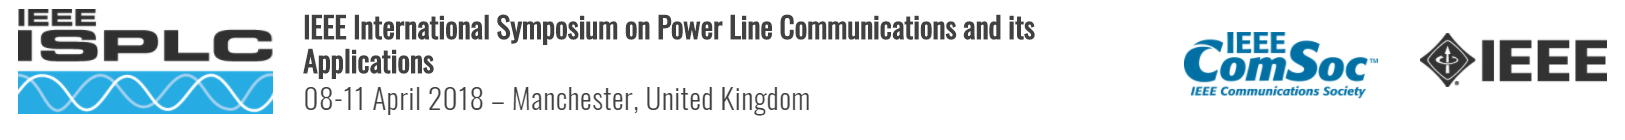 2018 IEEE International Symposium on Power Line Communications and its Applications